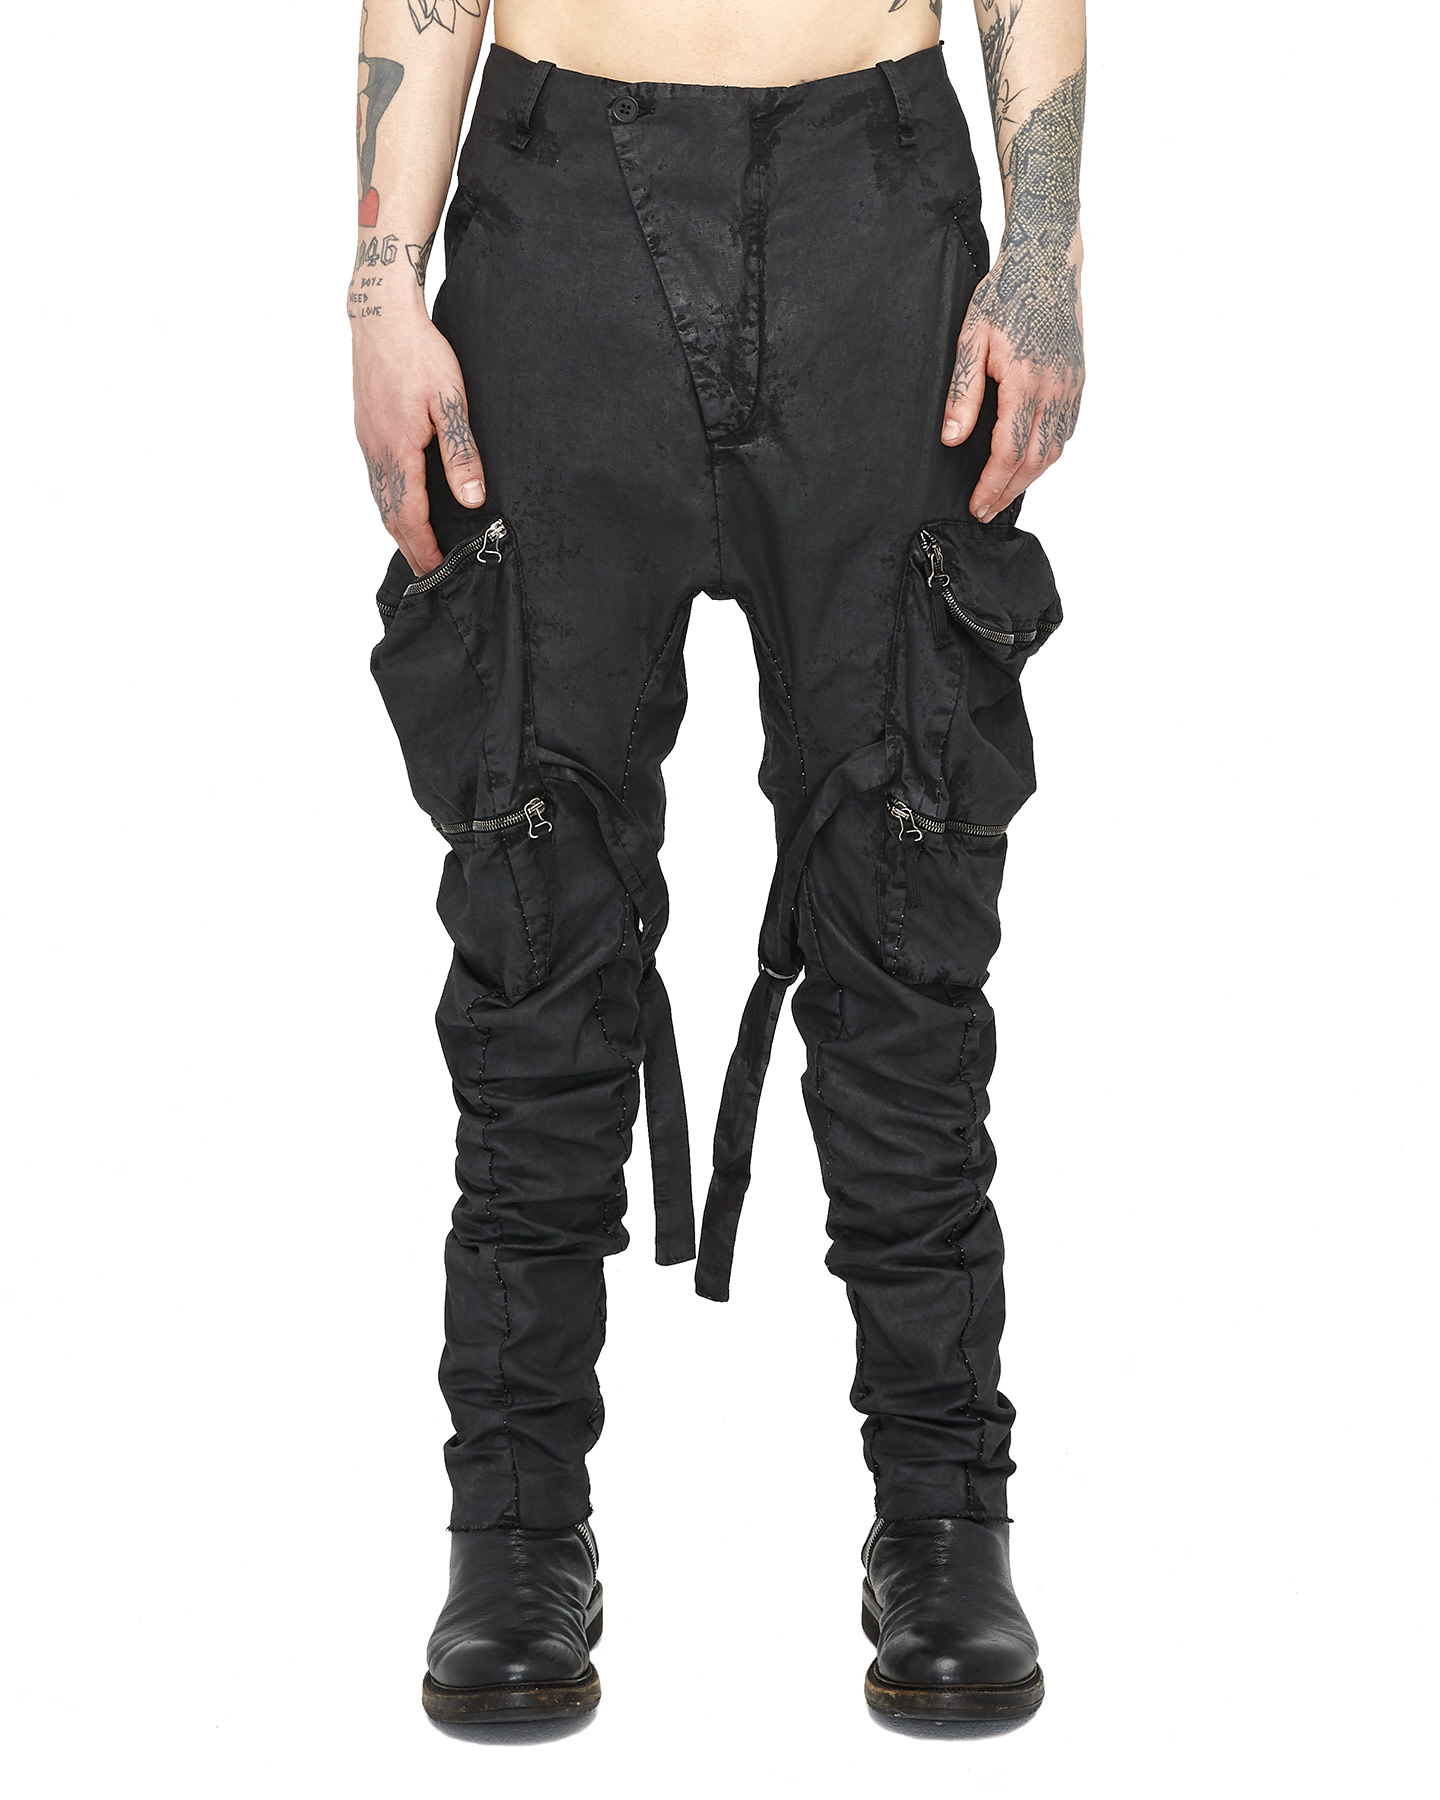 WEDGE POCKET BONDAGE PANTS - RESIN